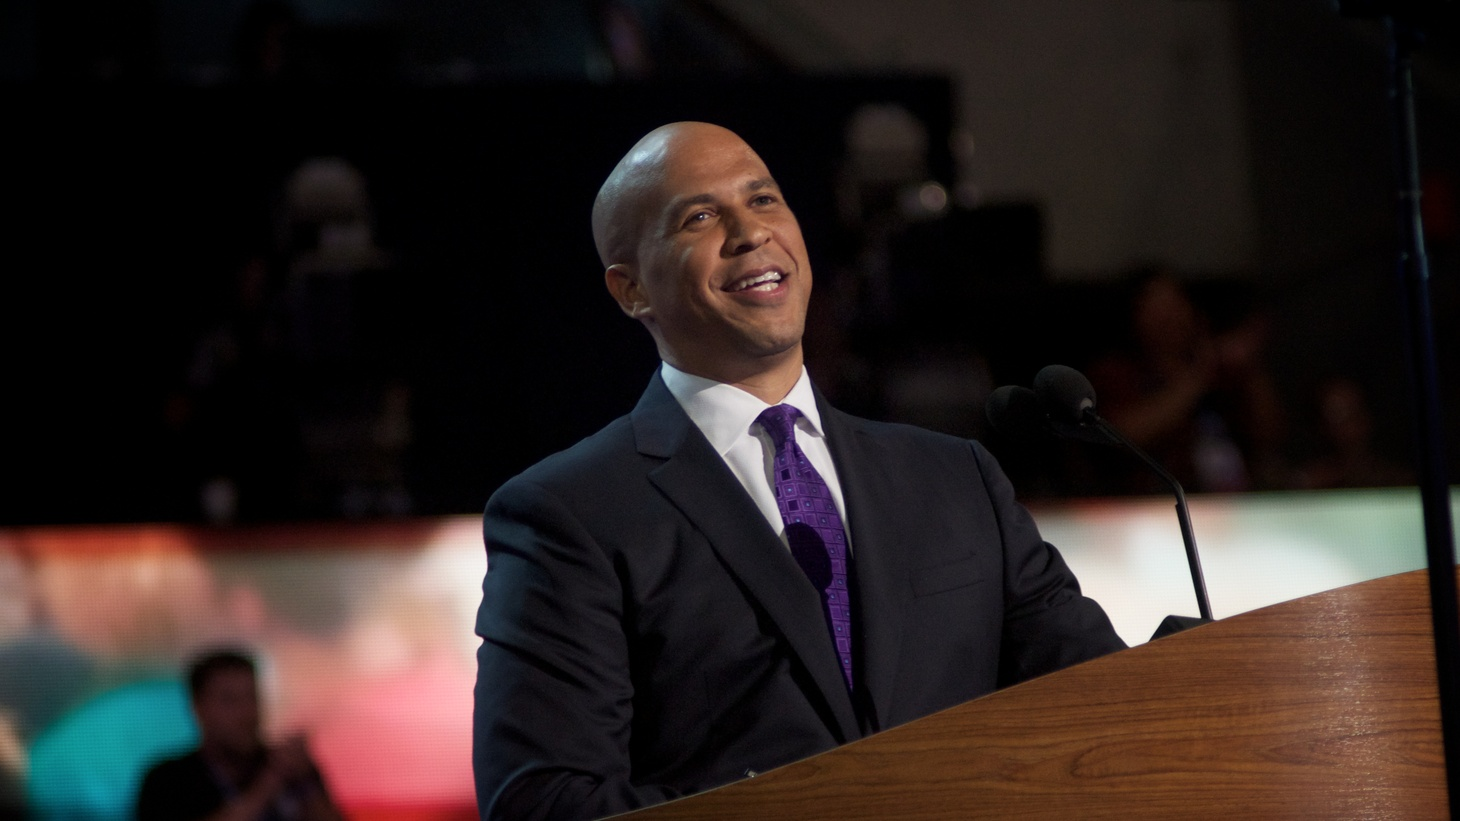 Senator Cory Booker is one of several Democratic lawmakers who wants to end qualified immunity for police officers.